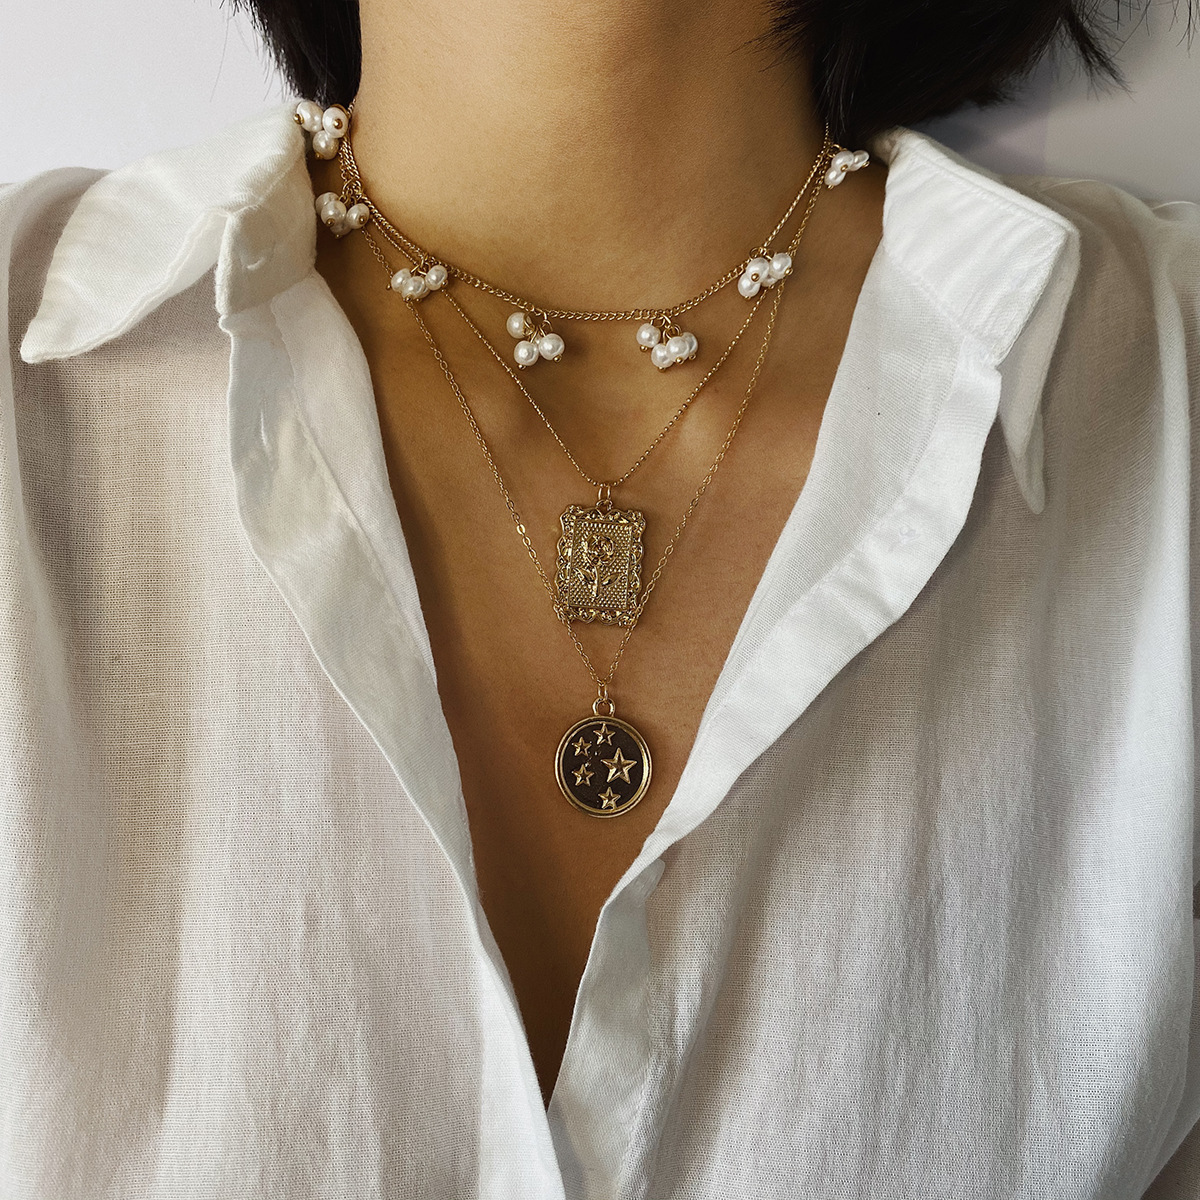 Tassel Imitation Pearls Choker Necklace Female Embossed Tag Pendant Necklaces for Women Gold Color 2020 Fashion Jewelry